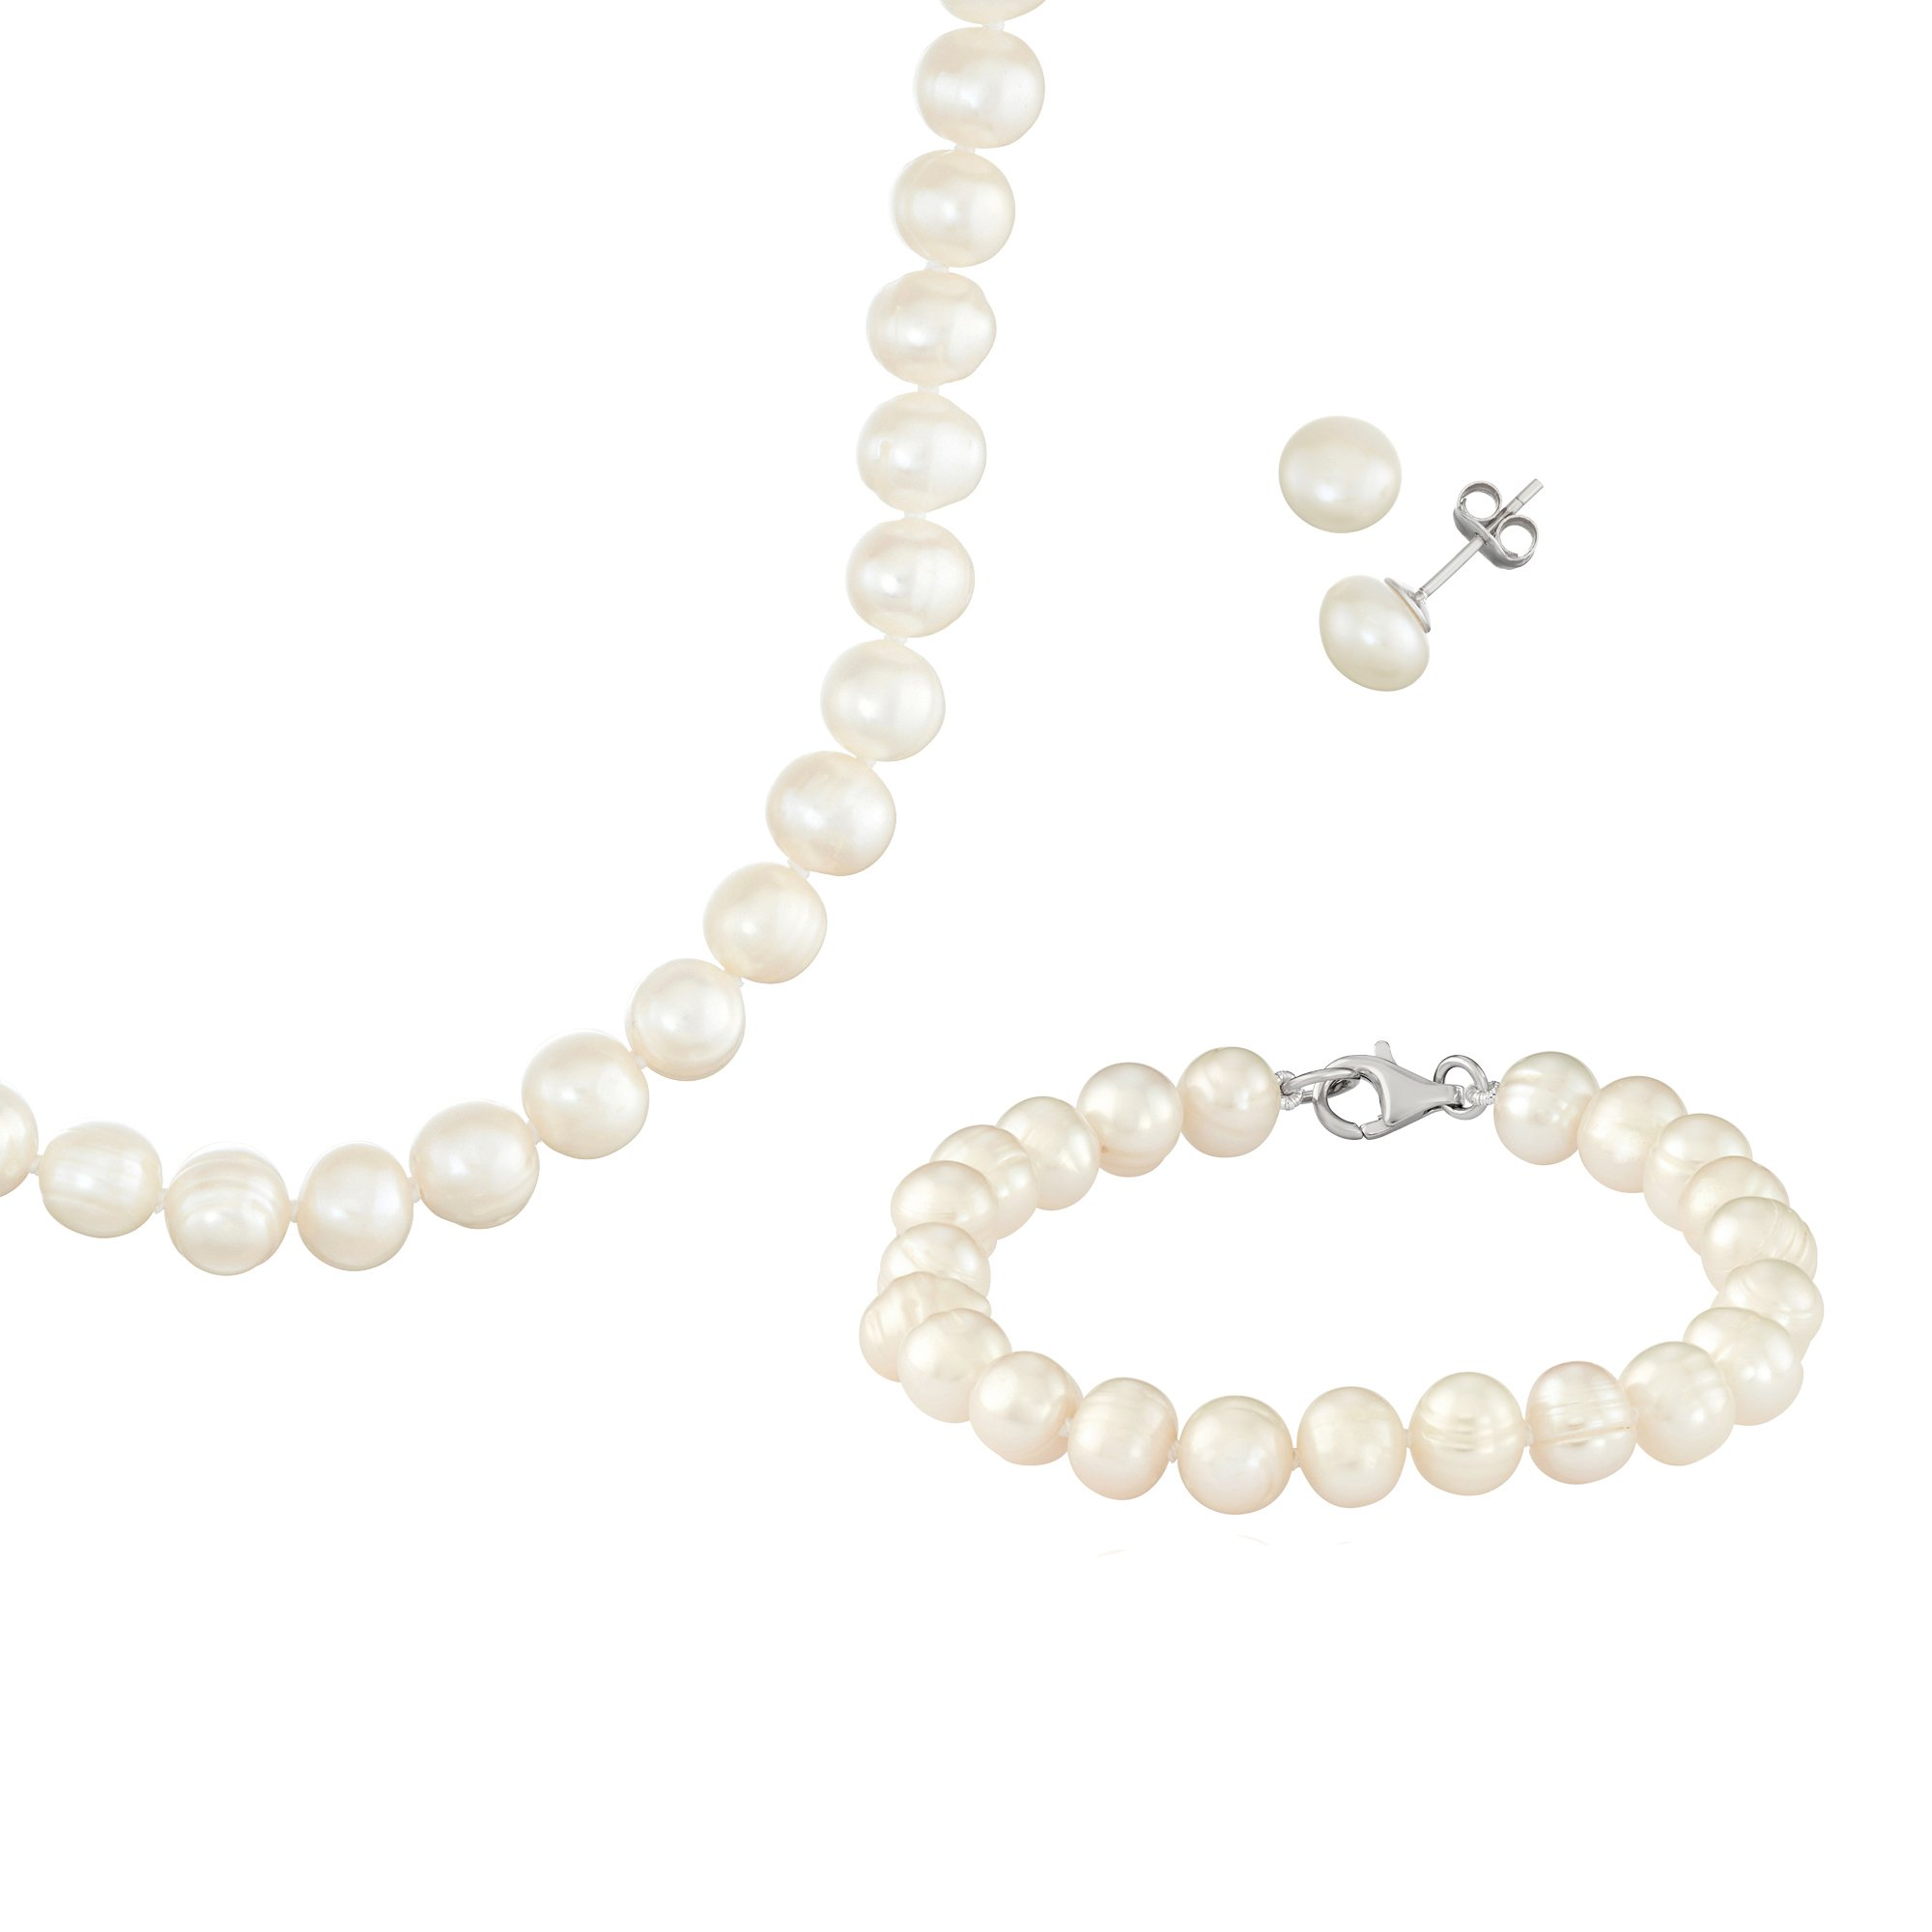 White Fresh Water Potato Pearl Sterling Silver Necklace, 18'', Bracelet, 7.5'', and Earring Set